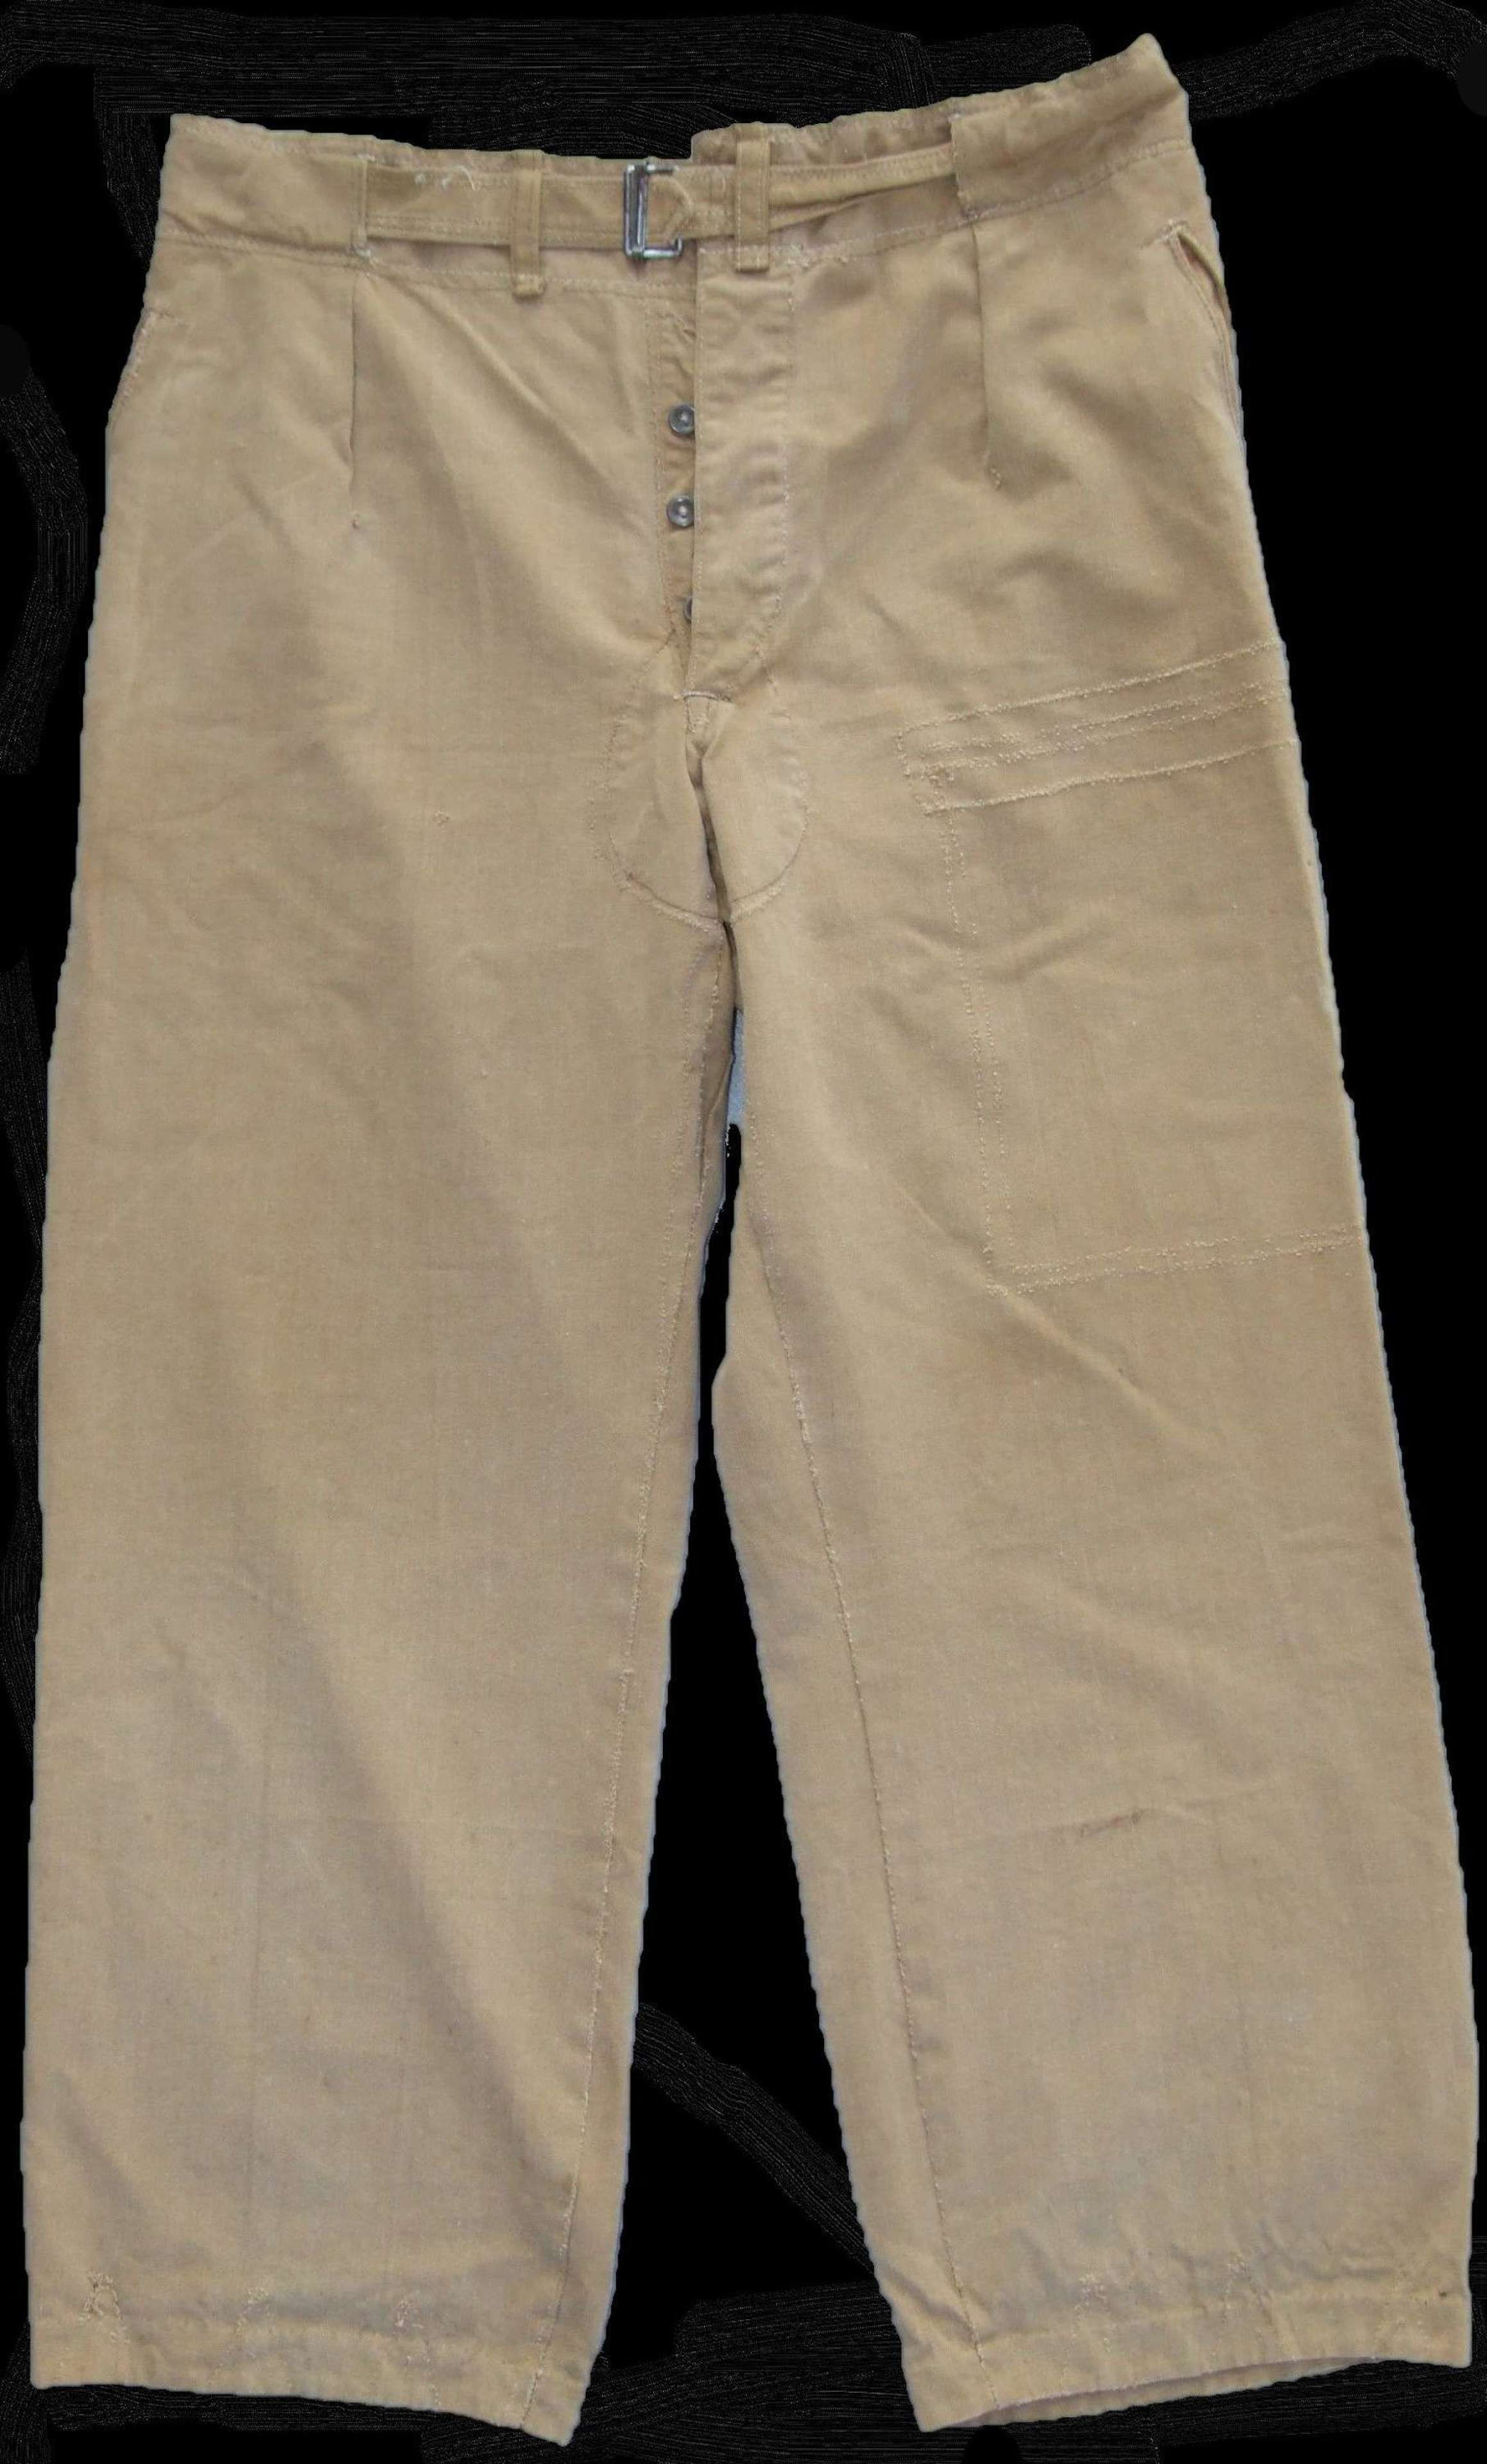 Luftwaffe Tropical trousers